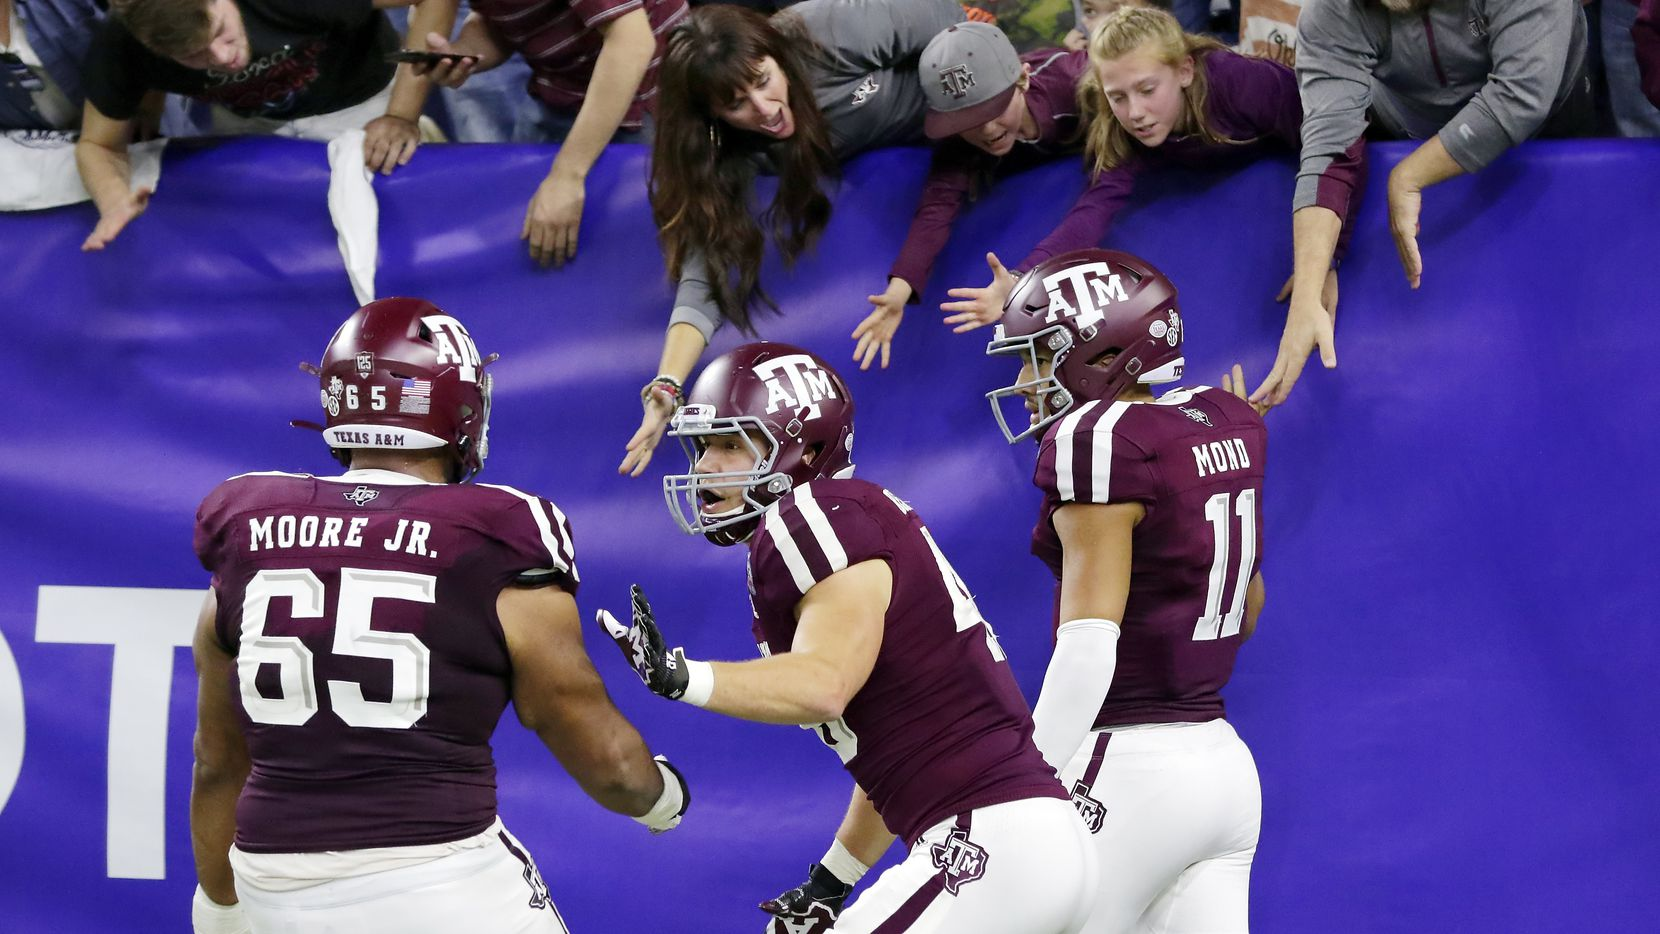 Texas A&M offensive lineman Dan Moore Jr. (65) and tight end Ryan Renick, middle, celebrate as quarterback Kellen Mond (11) high-five fans in the stands after Mond's touchdown during the second half of the Texas Bowl NCAA college football game against Oklahoma State on Friday, Dec. 27, 2019, in Houston.